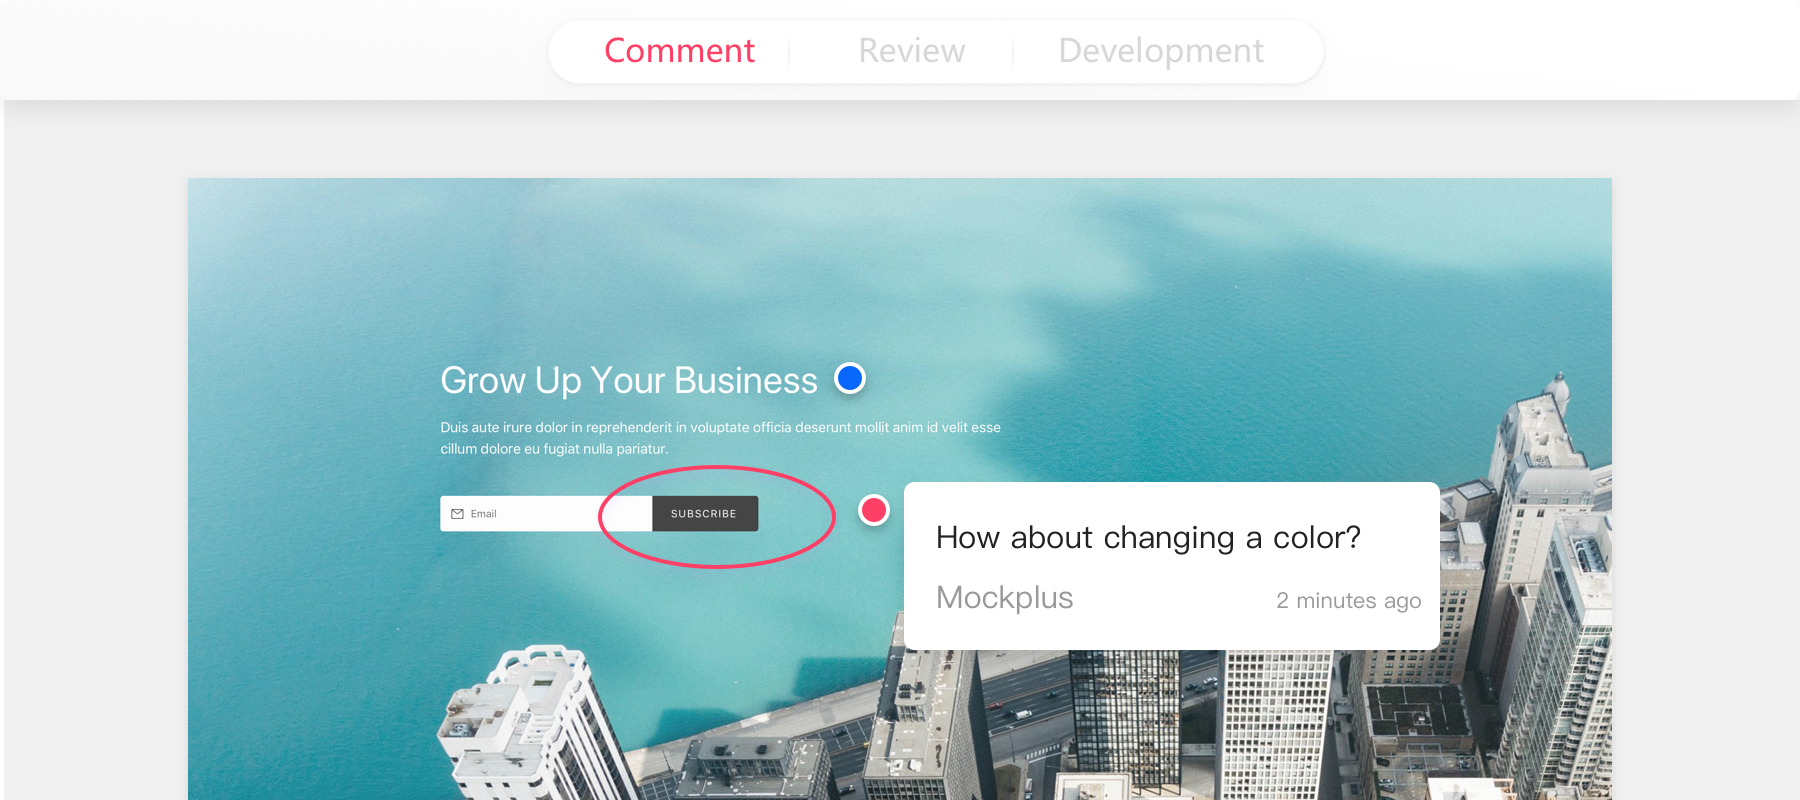 Comment - Offers rich comment tools